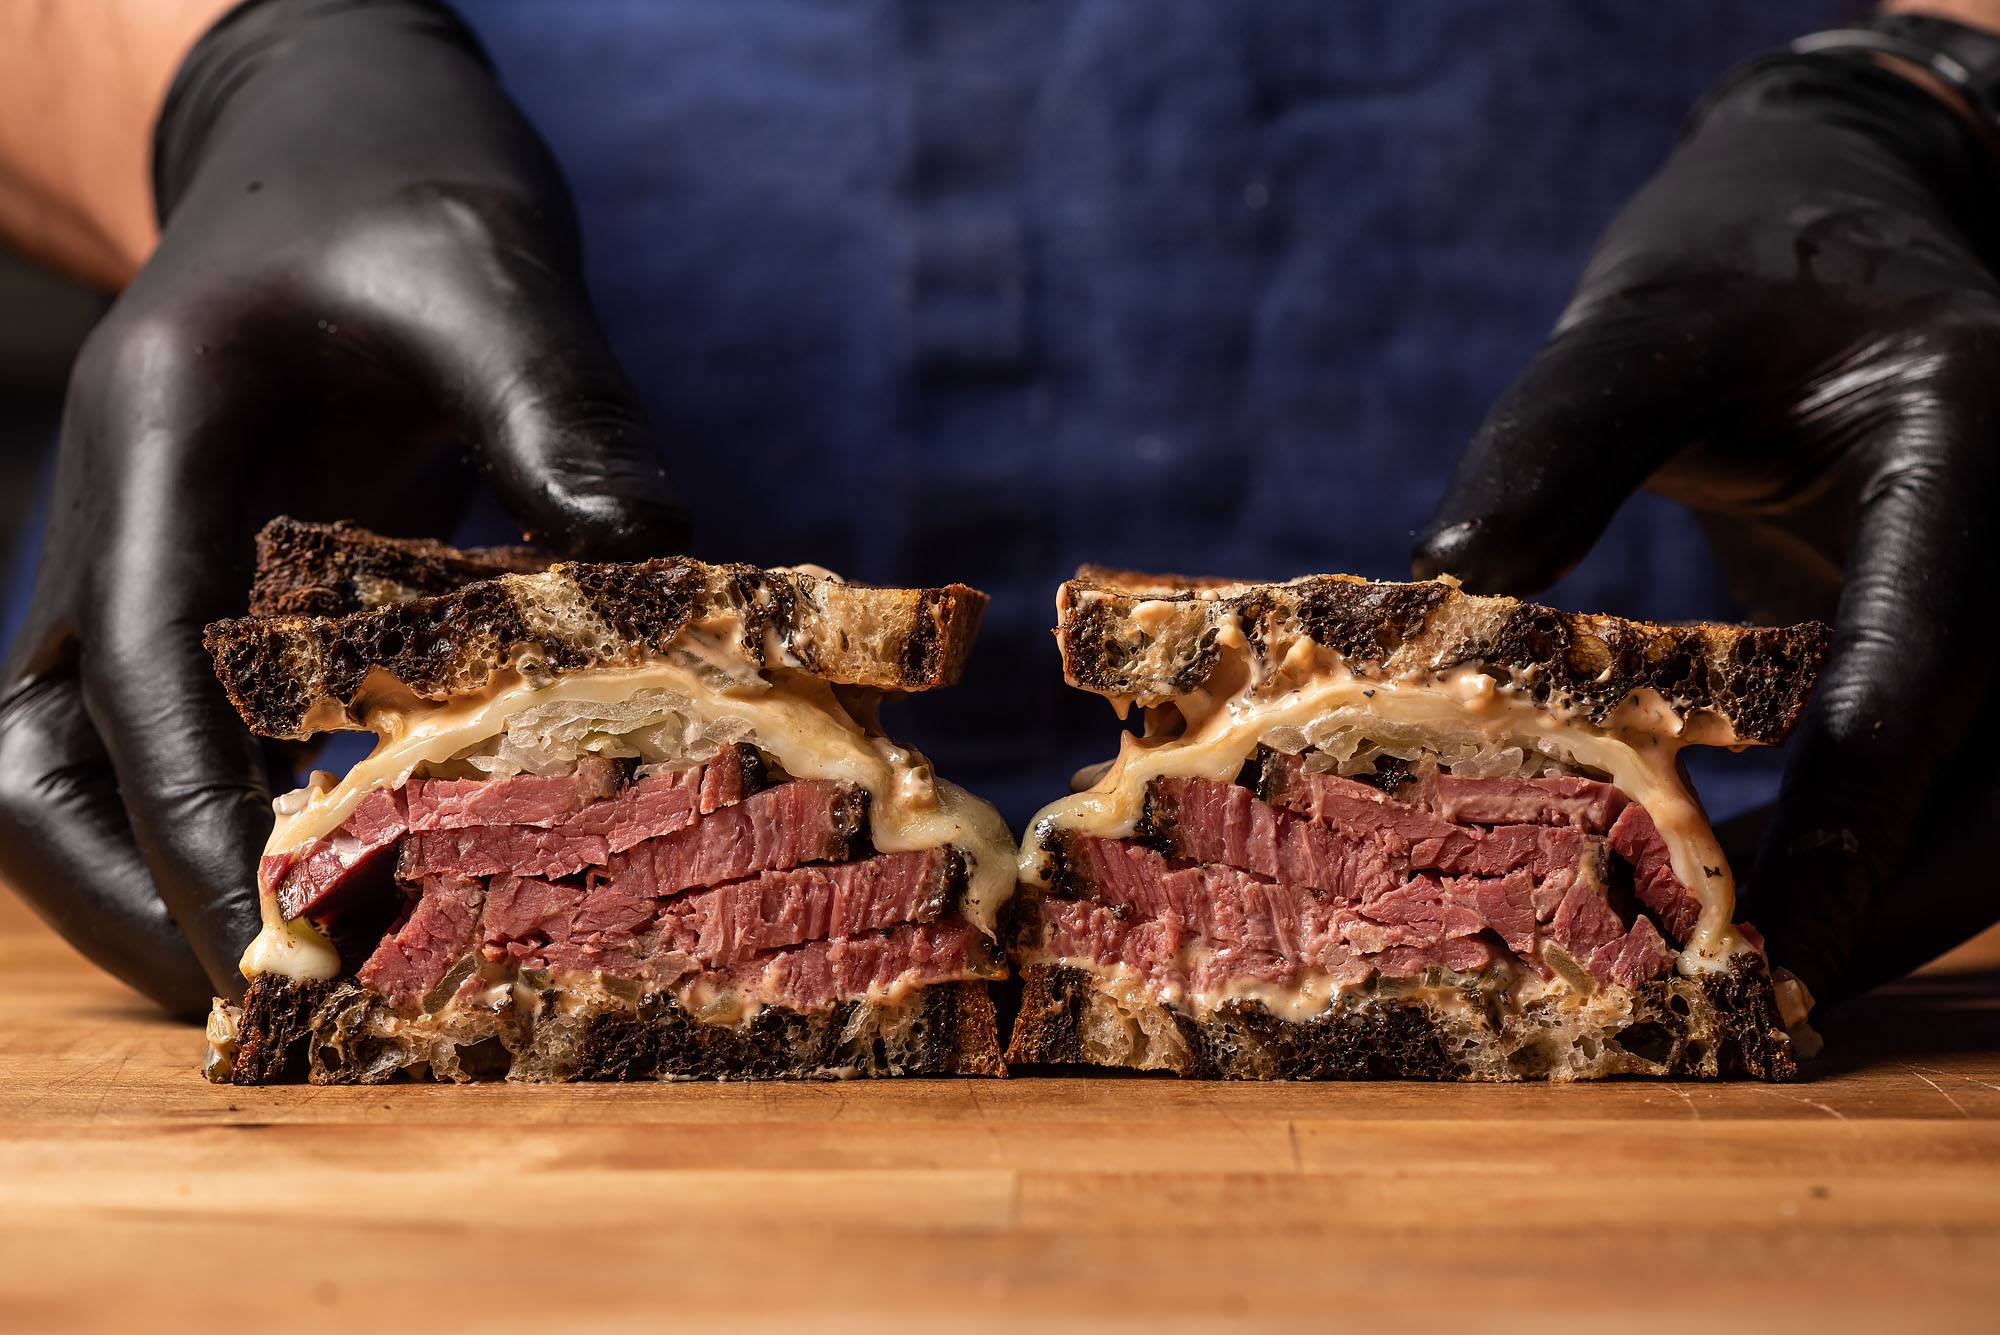 A thick-cut pastrami sandwich on marbled rye.